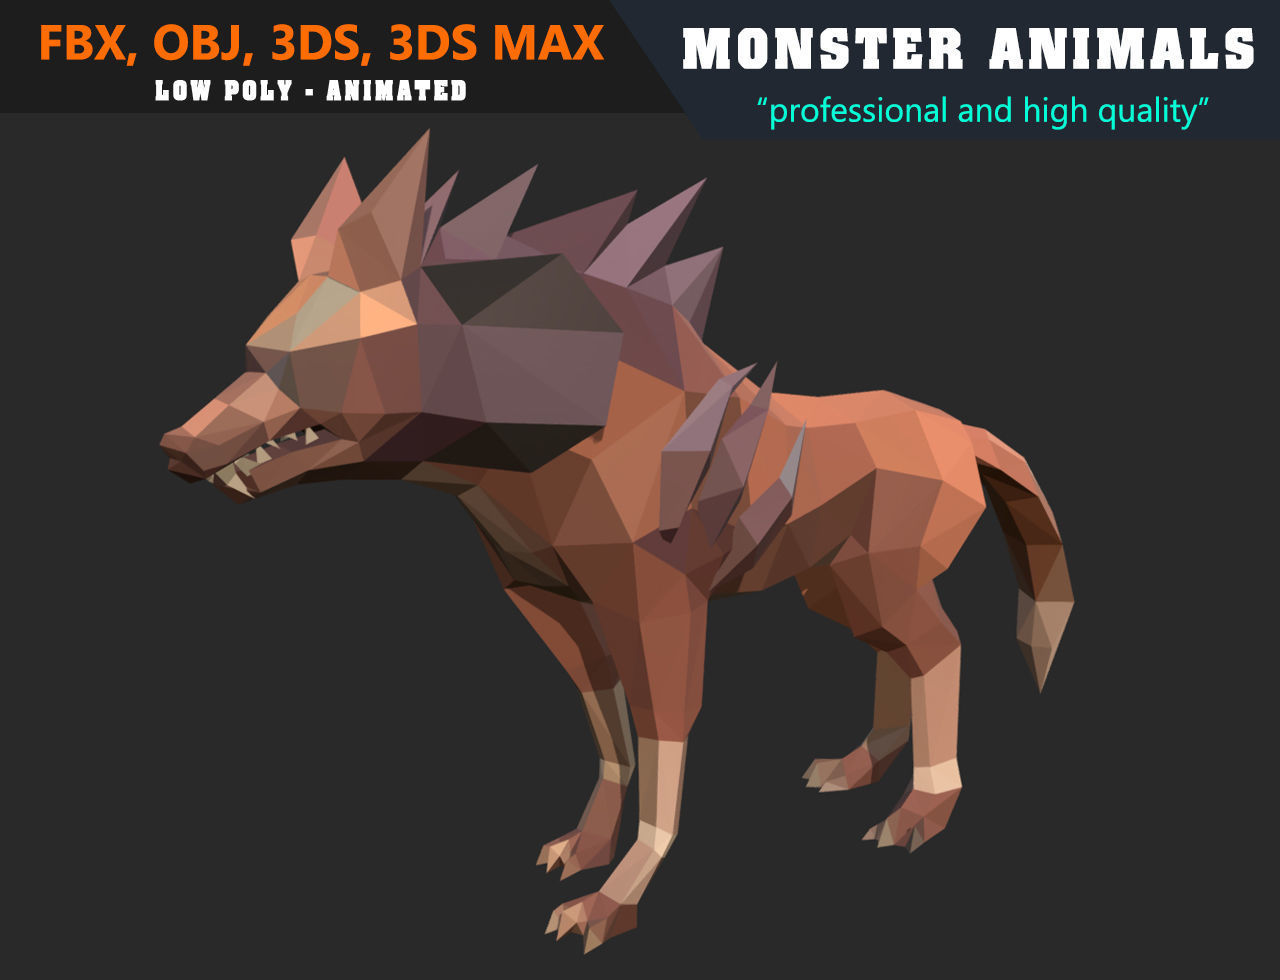 3d Models For Animation Low Poly Wolf Cartoon Monster 3d Model Animated Game Ready 3d Model